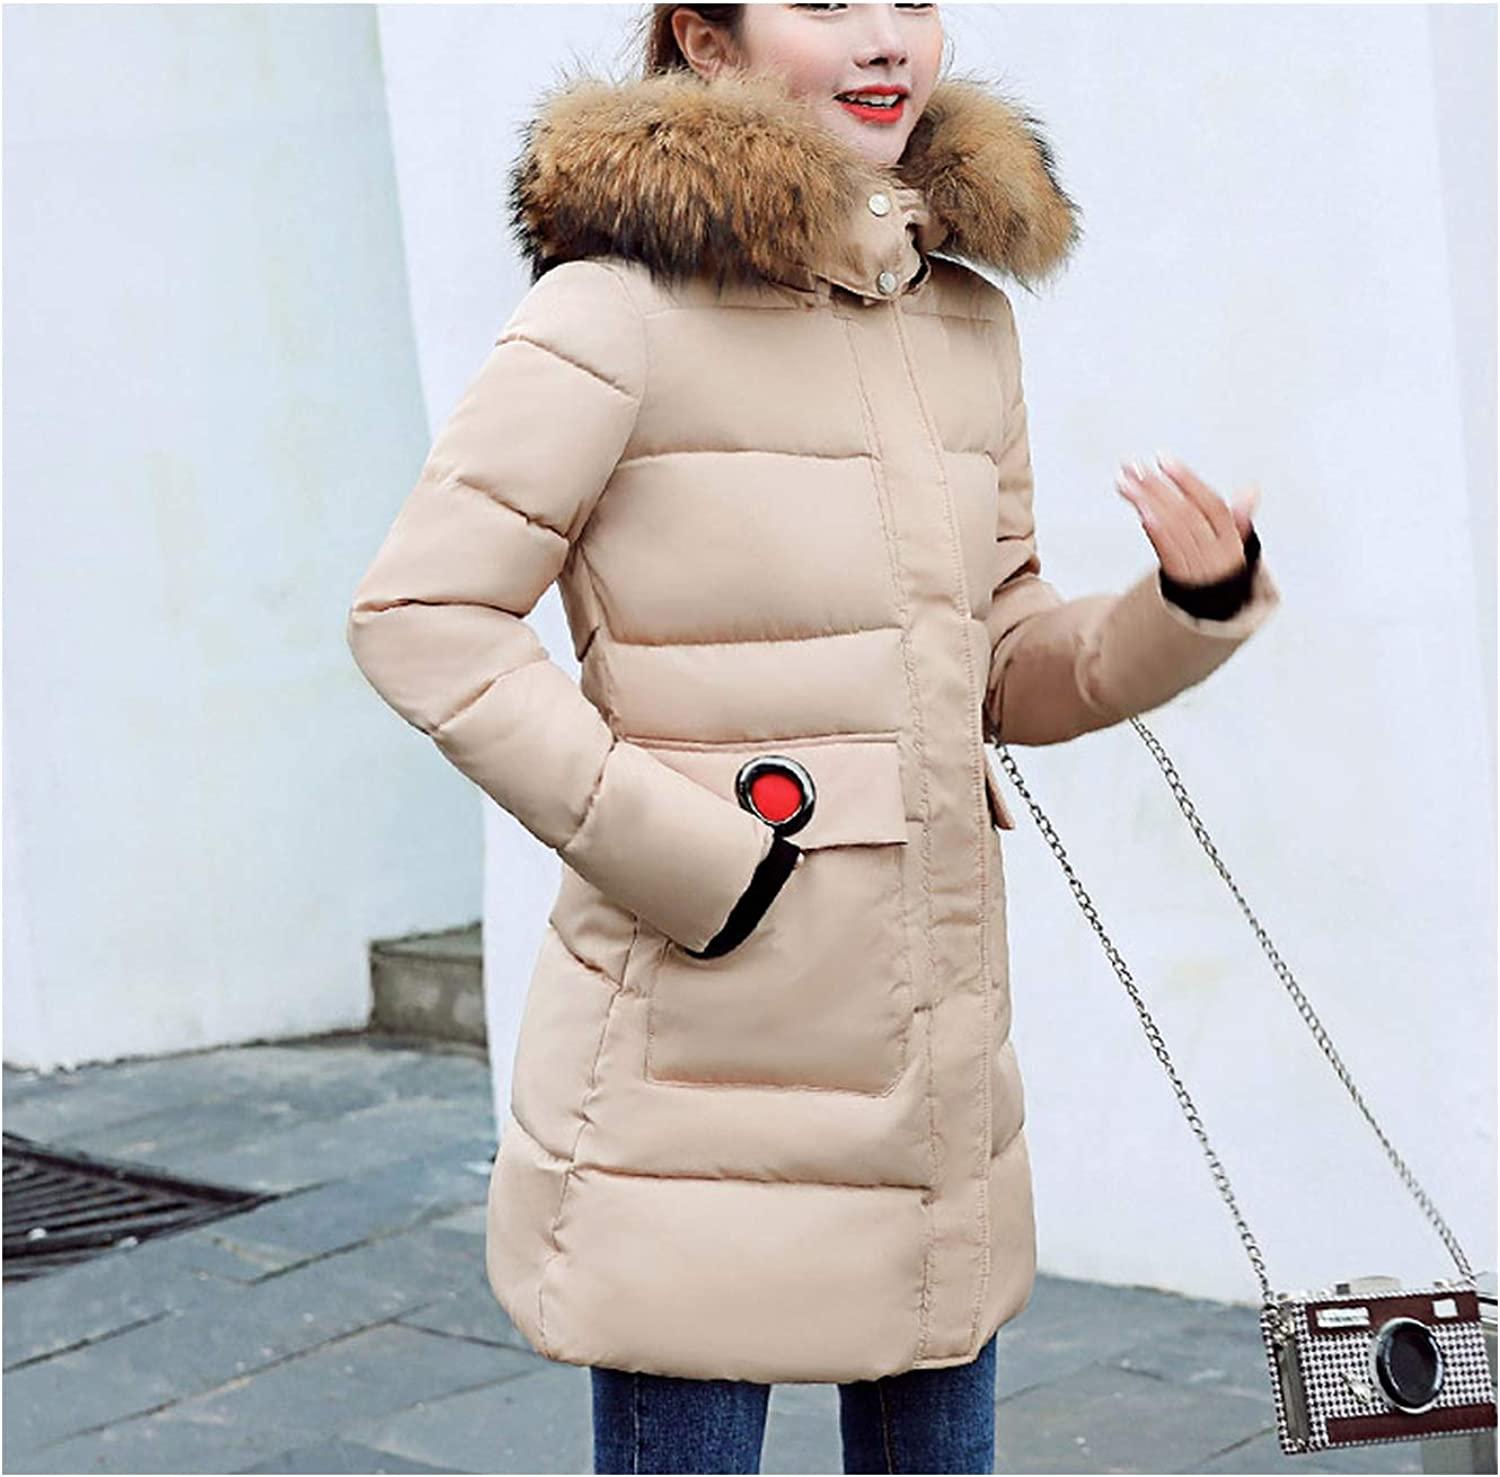 Fanatical-Night The Item was Updated,Big F-ur Collar Winter Jacket Women Hooded Cotton Padded Female Coat Long Outwear Casaco